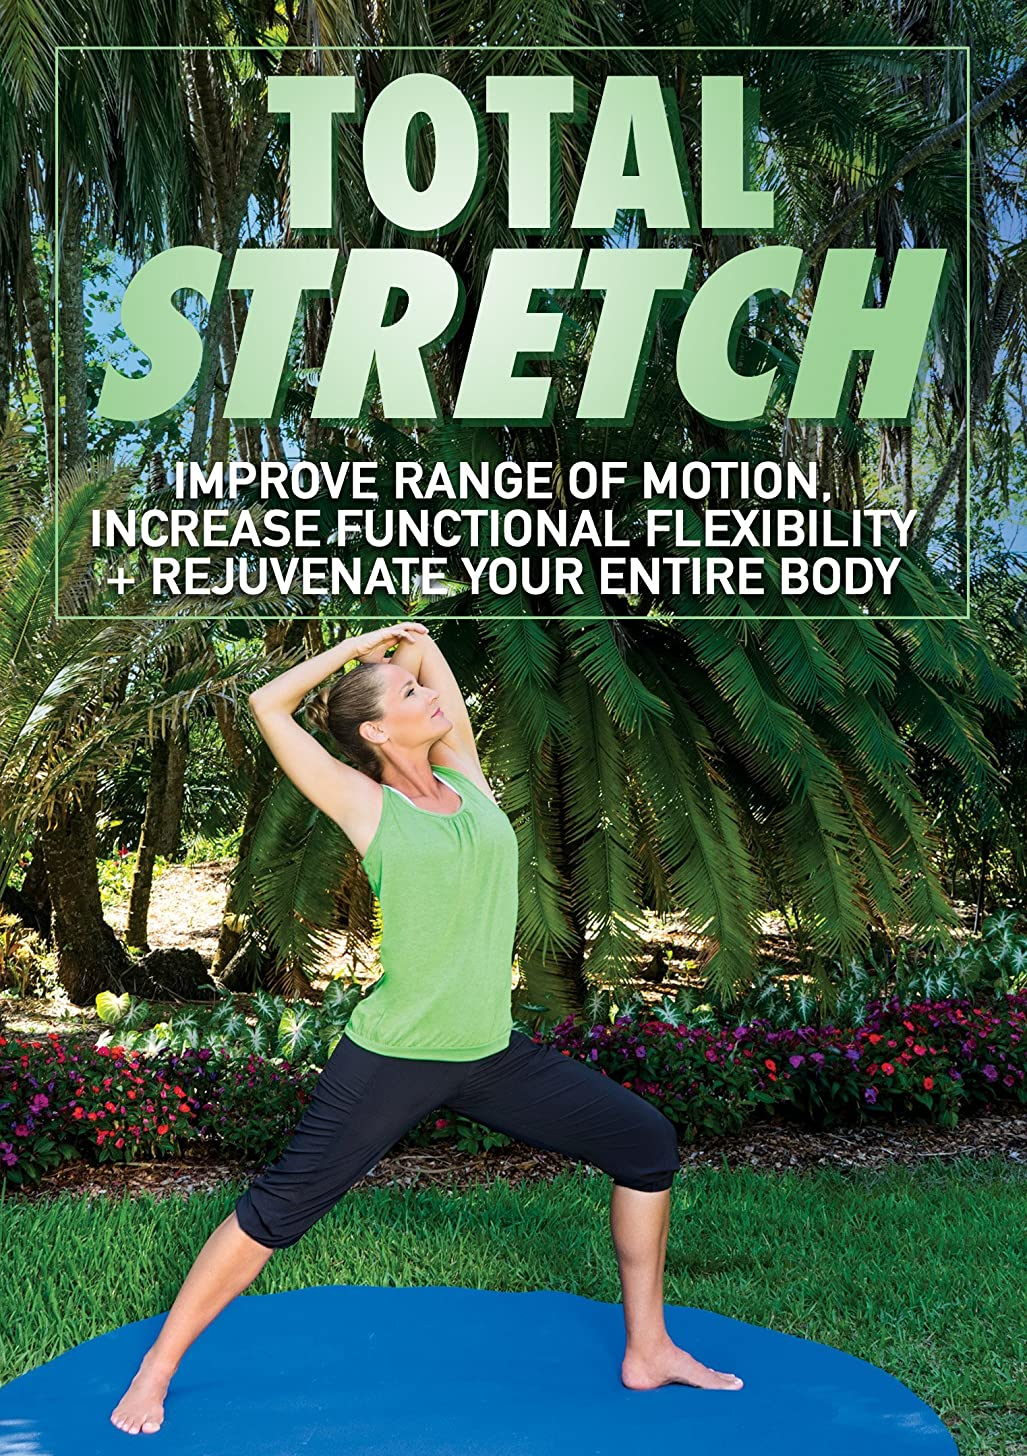 Total Stretch: Improve Range of Motion, Increase Functional Flexibility + Rejuvenate Your Entire Body with Jessica Smith